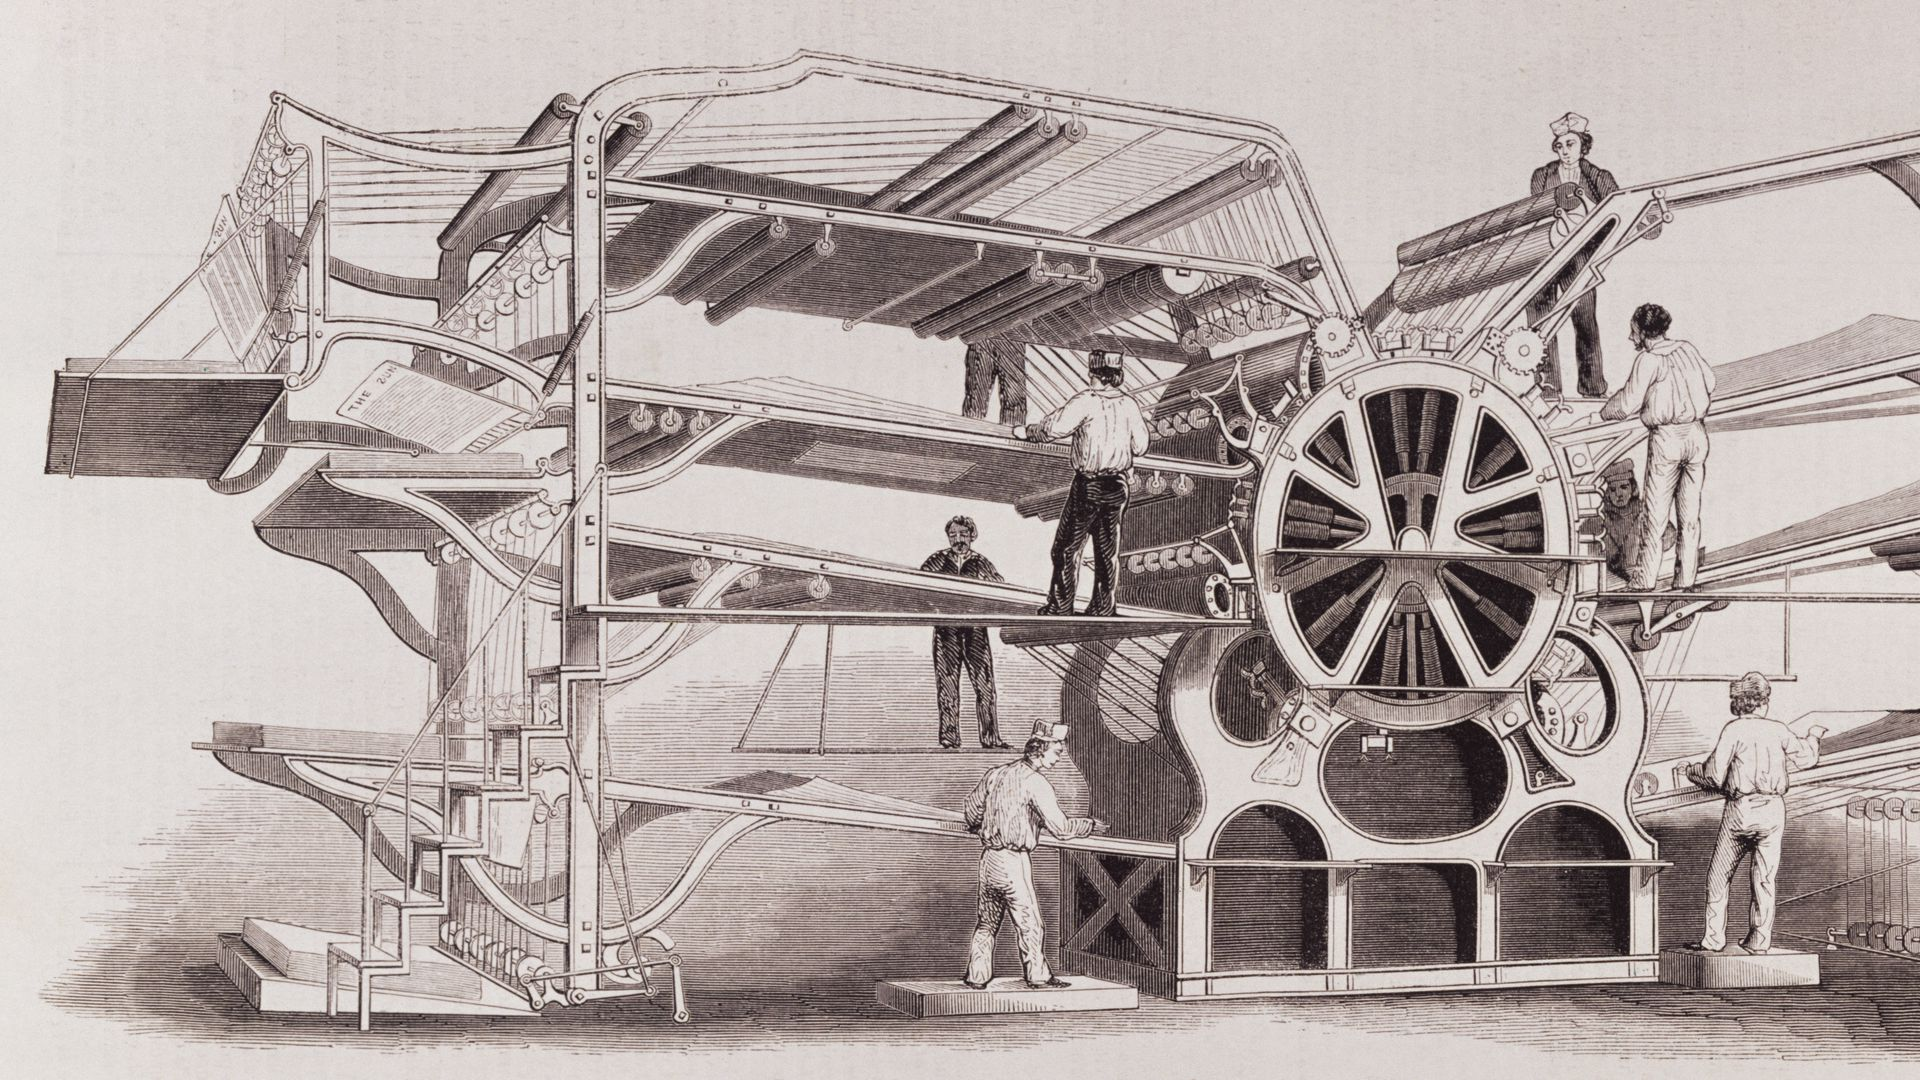 Antique illustration of a 19th-century steam powered printing press